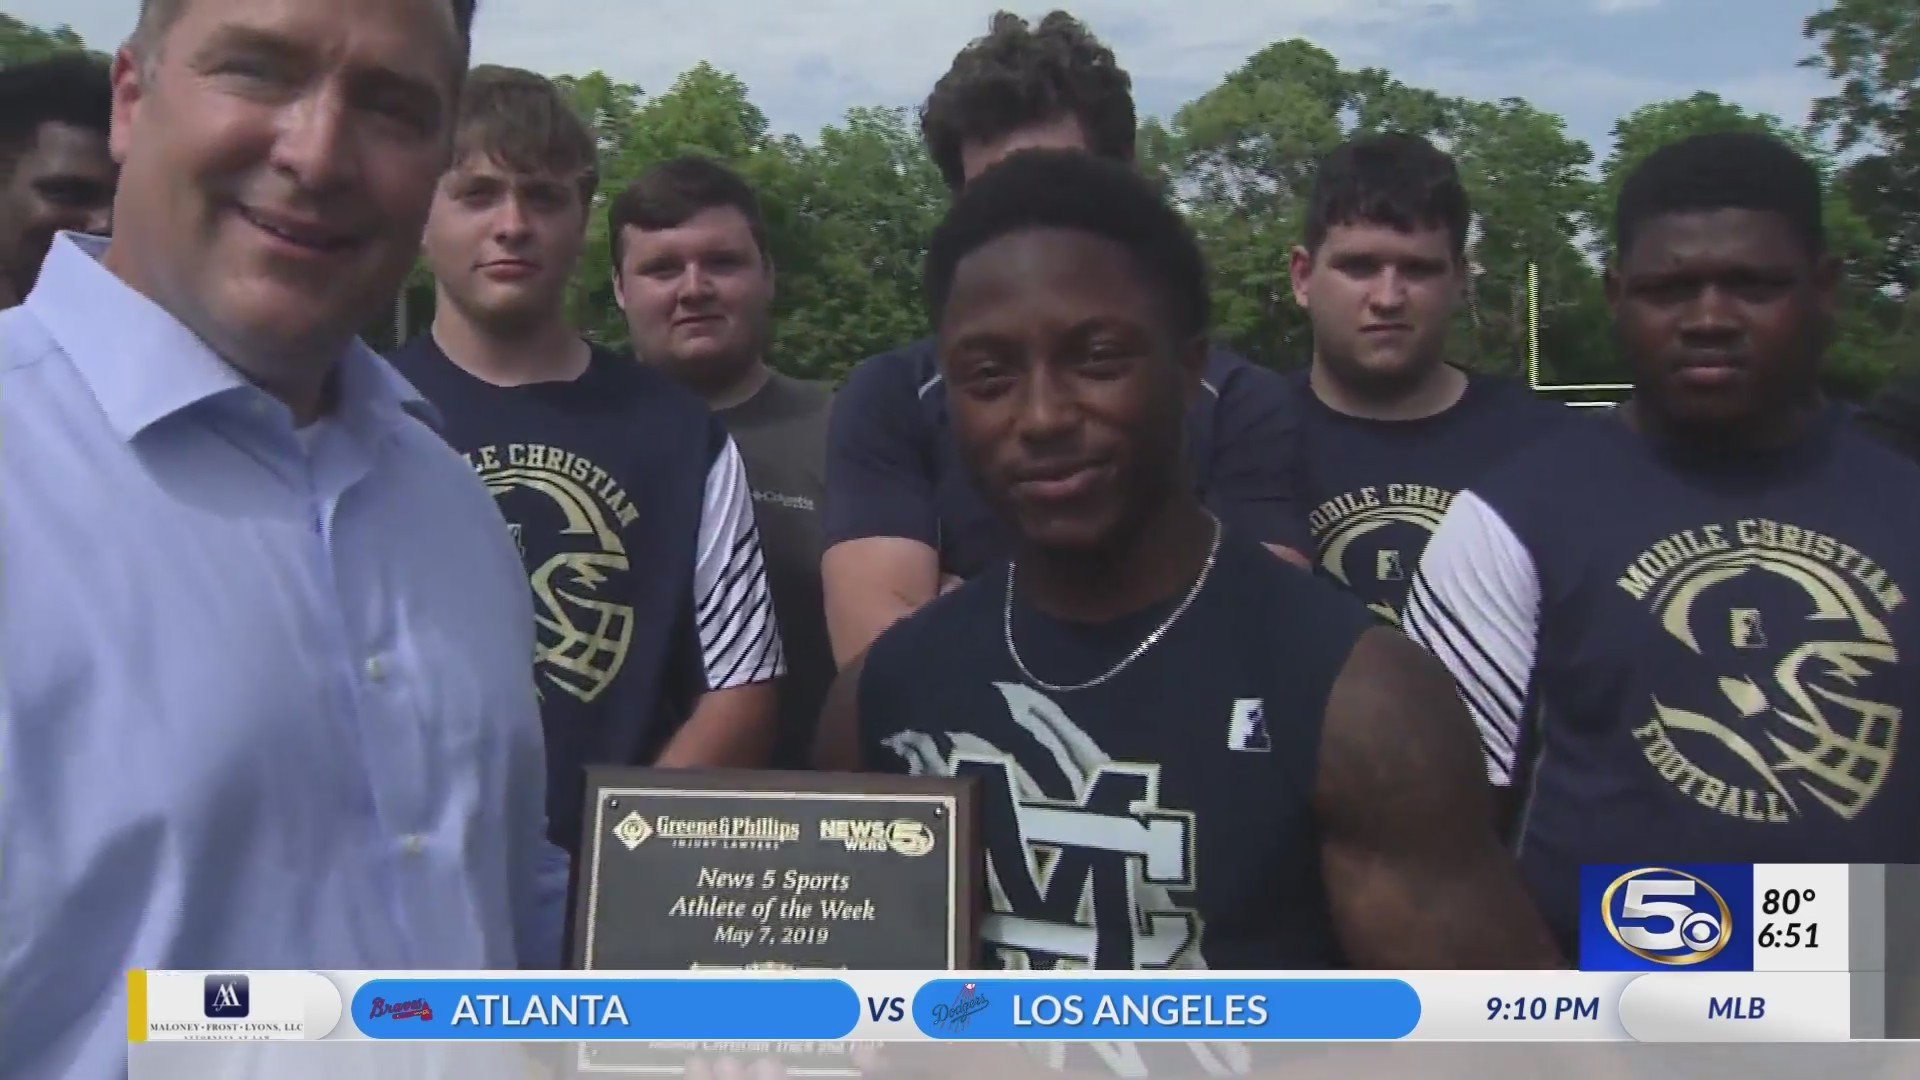 VIDEO: Leopards sprinter takes Athlete of the Week honors